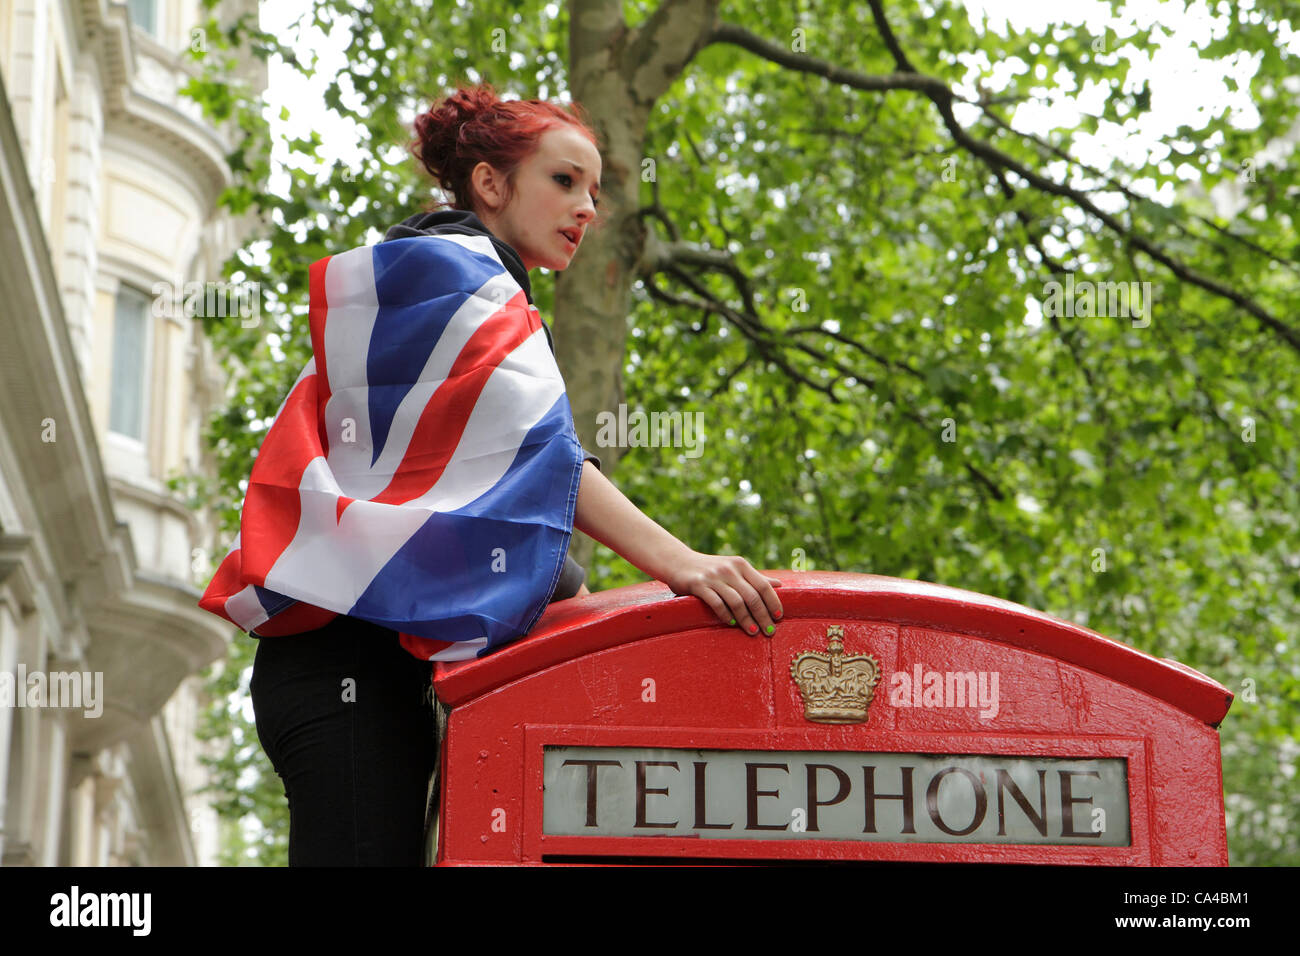 A girl climbs onto a telephone box to watch the Queen's Diamond Jubilee carriage procession, London - Stock Image